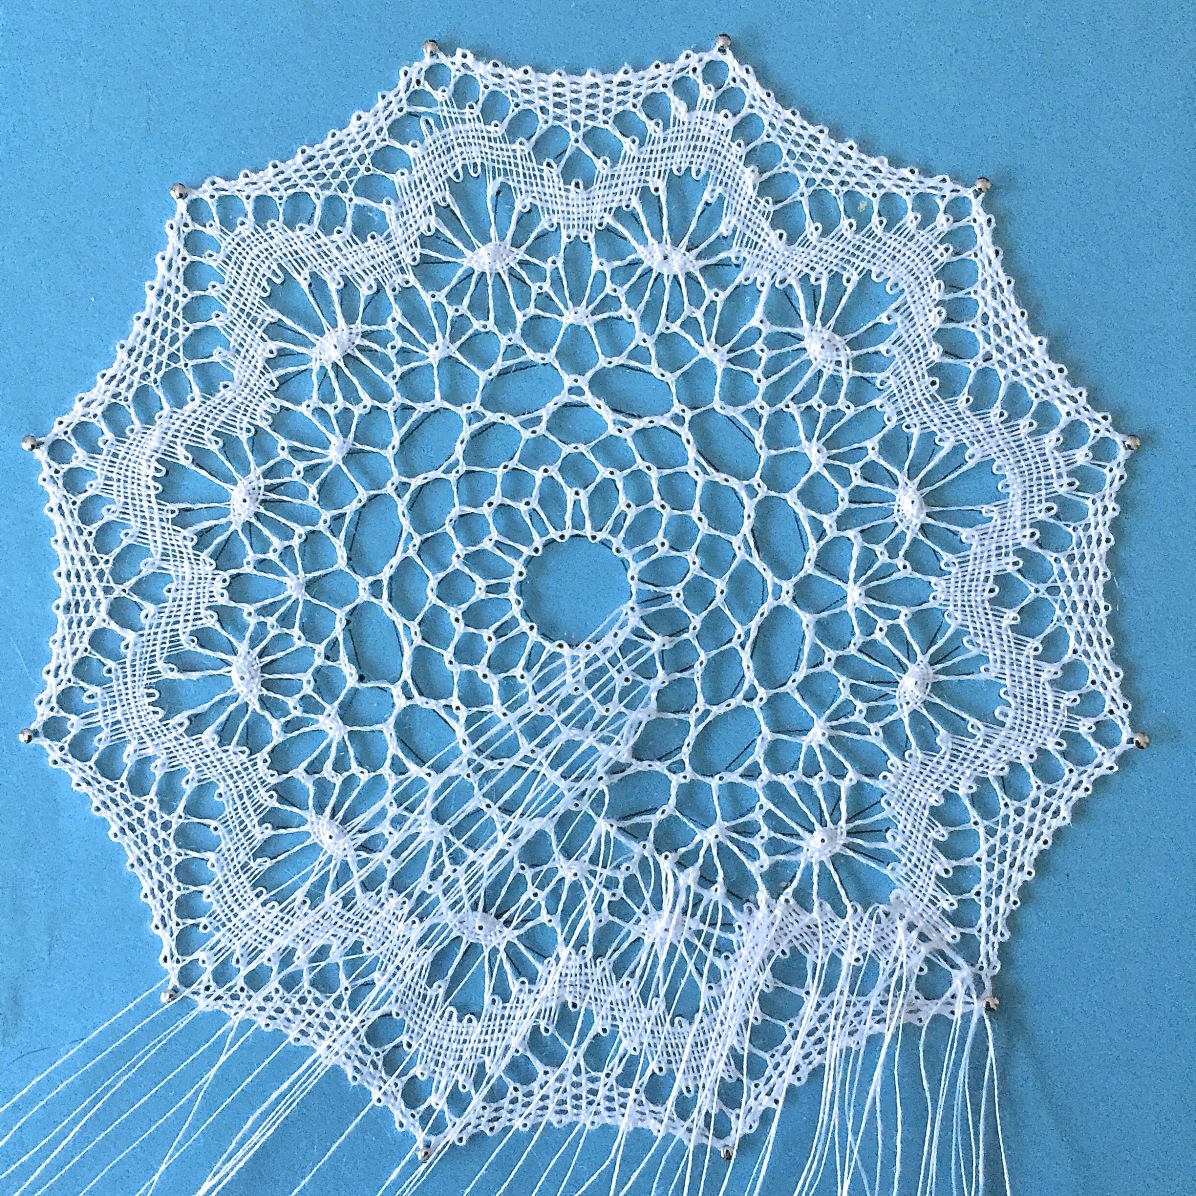 Torchon lace by Yvette. Pattern designed by Annie Vancraeynest